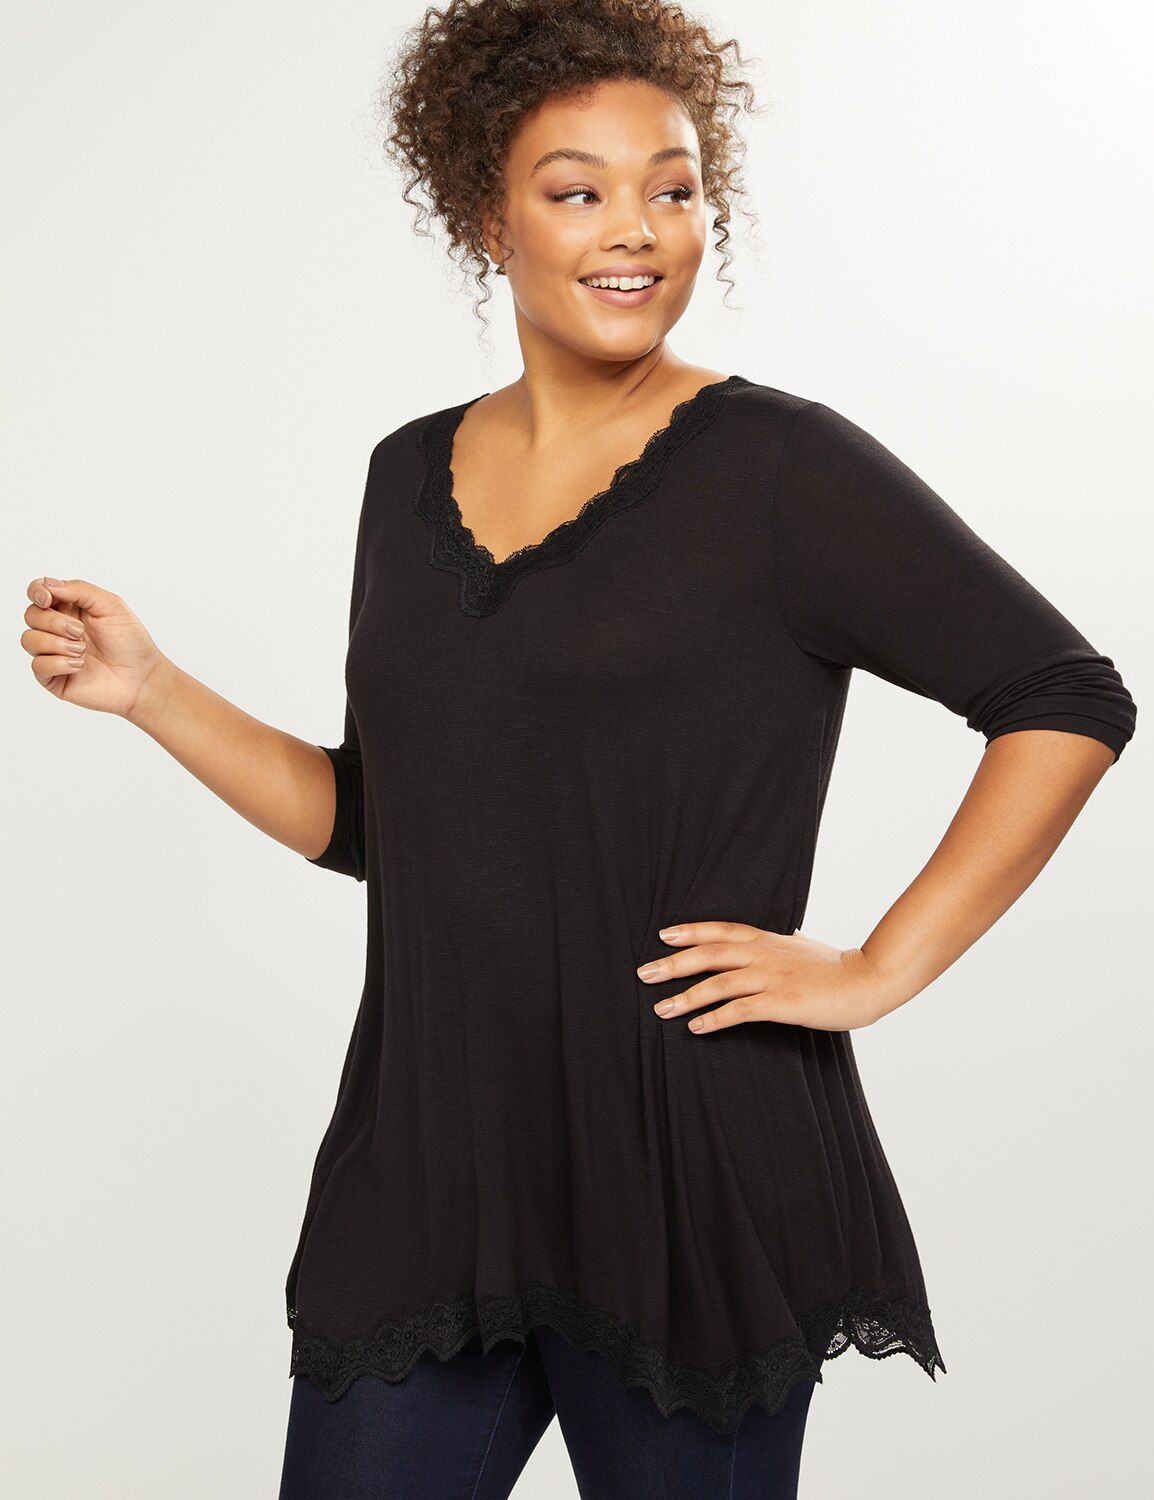 Christmas Tops Plus Size.Plus Size Tops Shirts For Women Lane Bryant